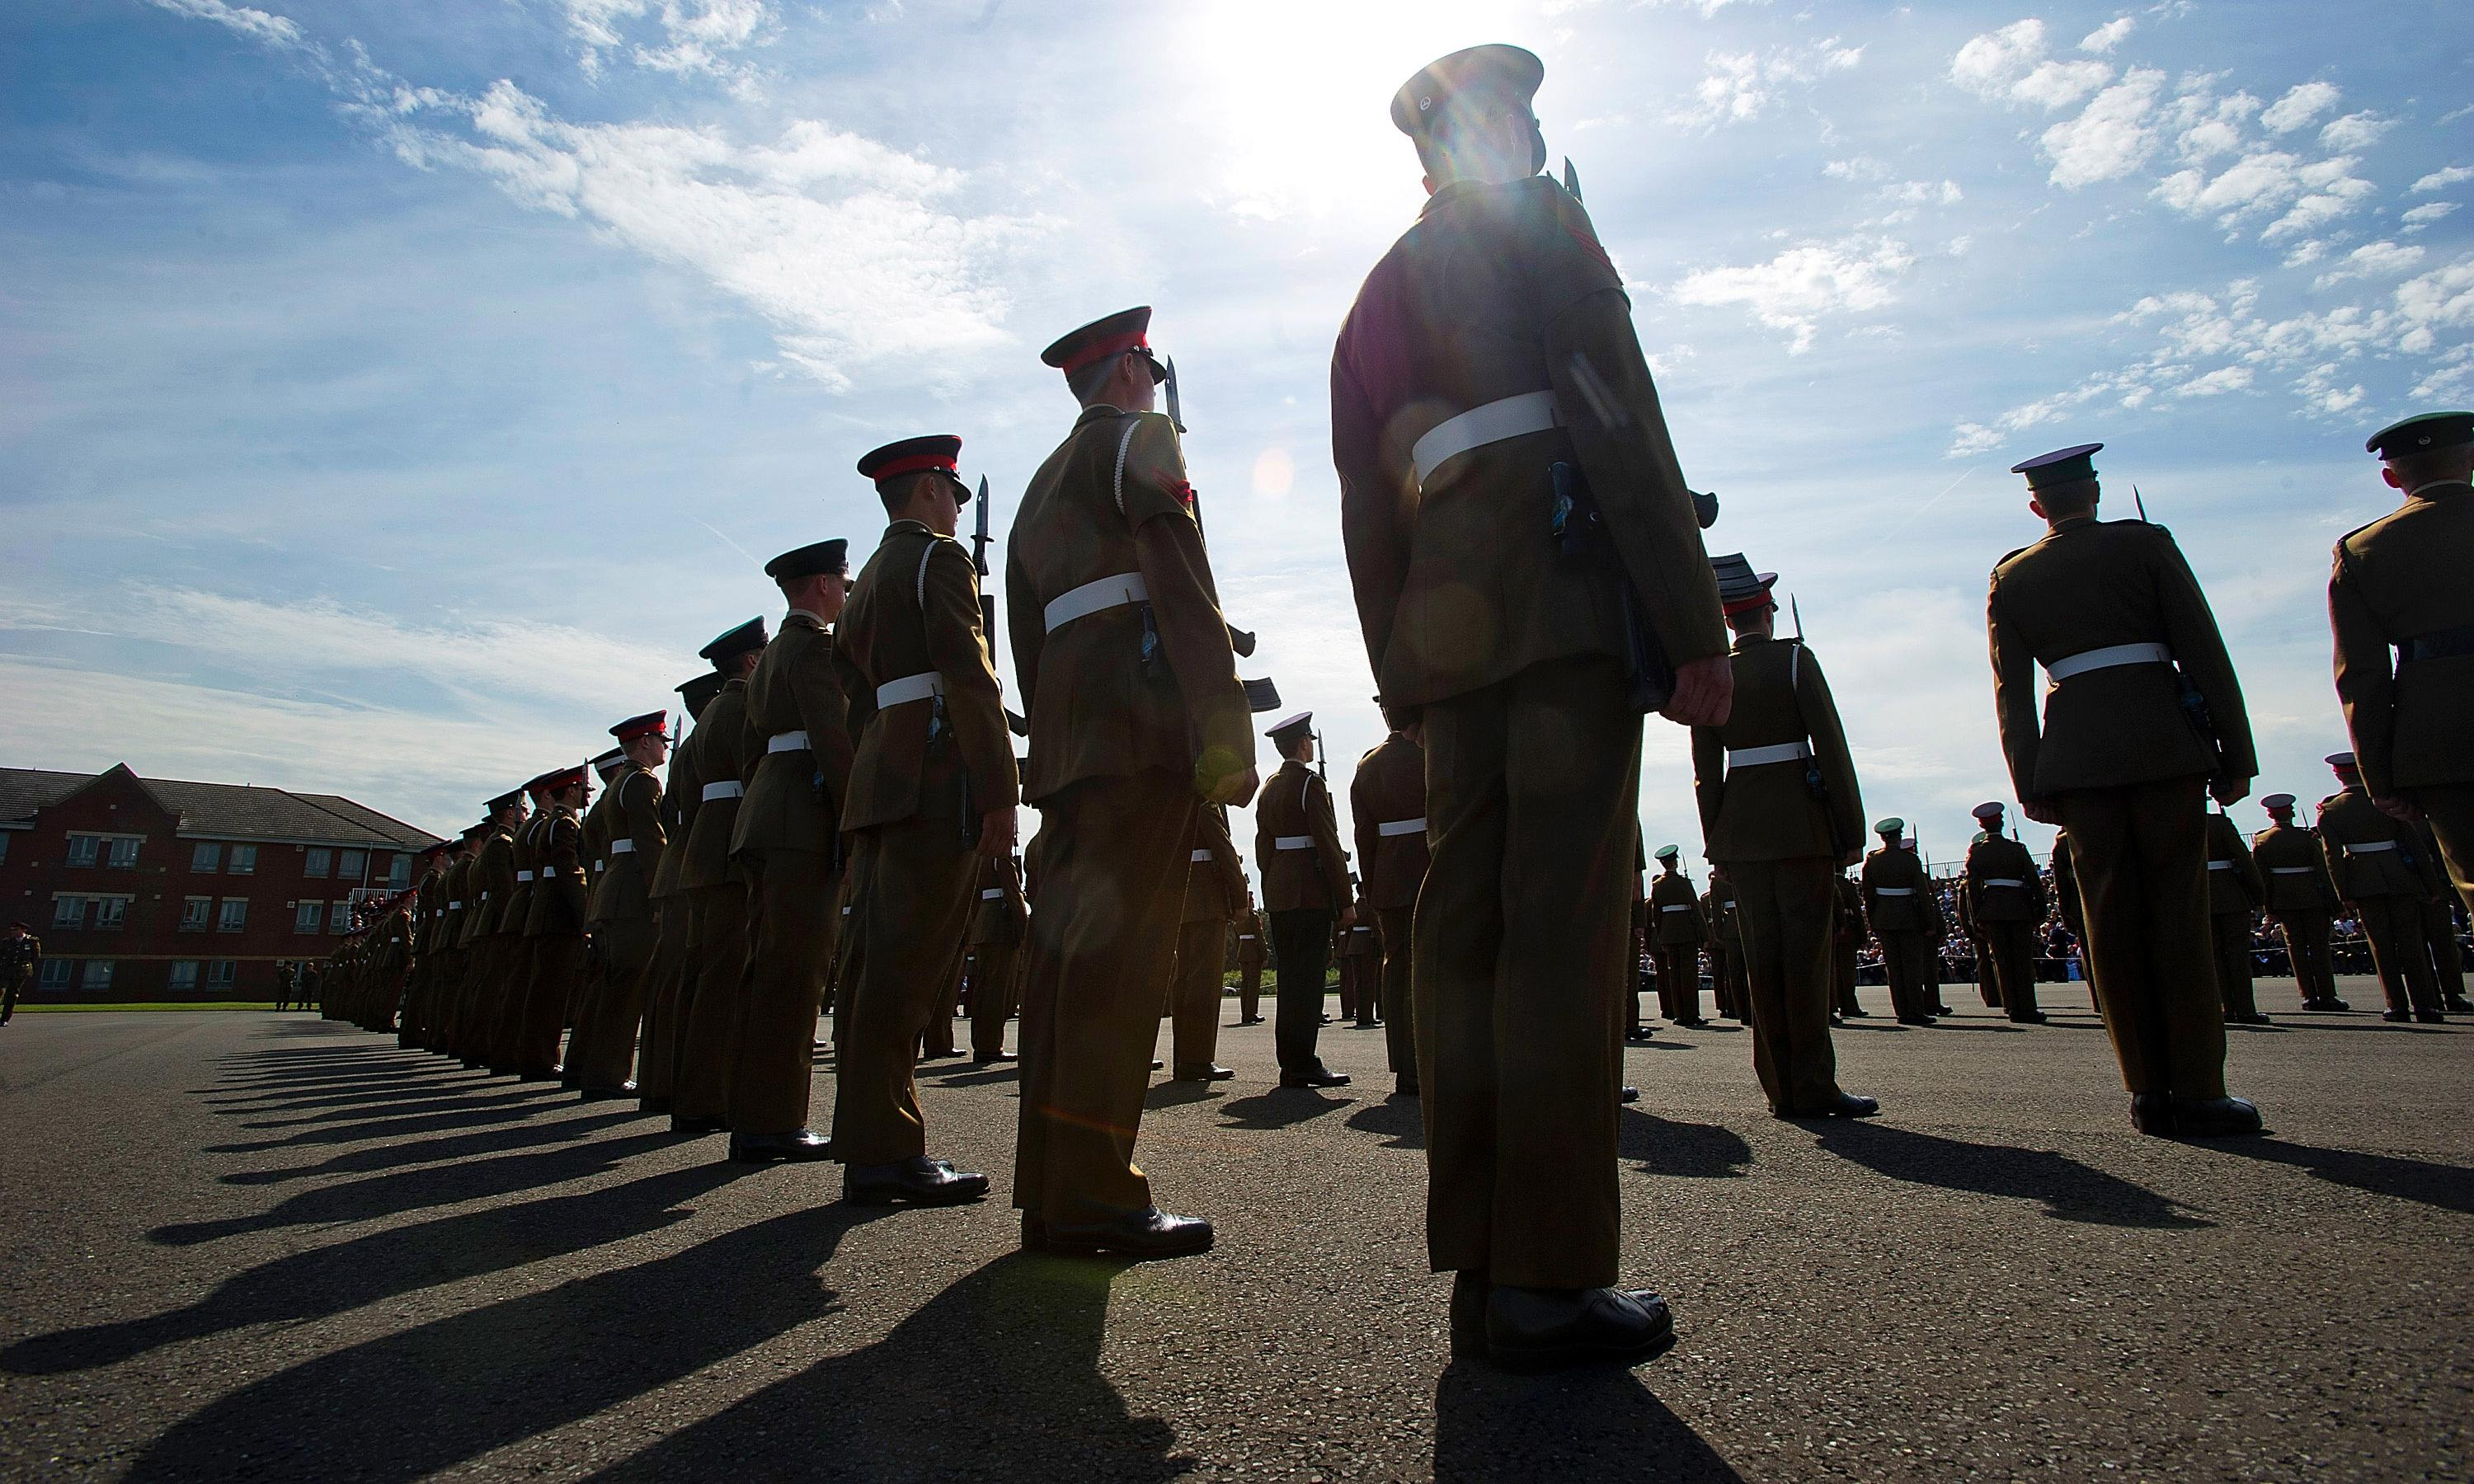 The Guardian view on 16-year-old soldiers: armies are for adults